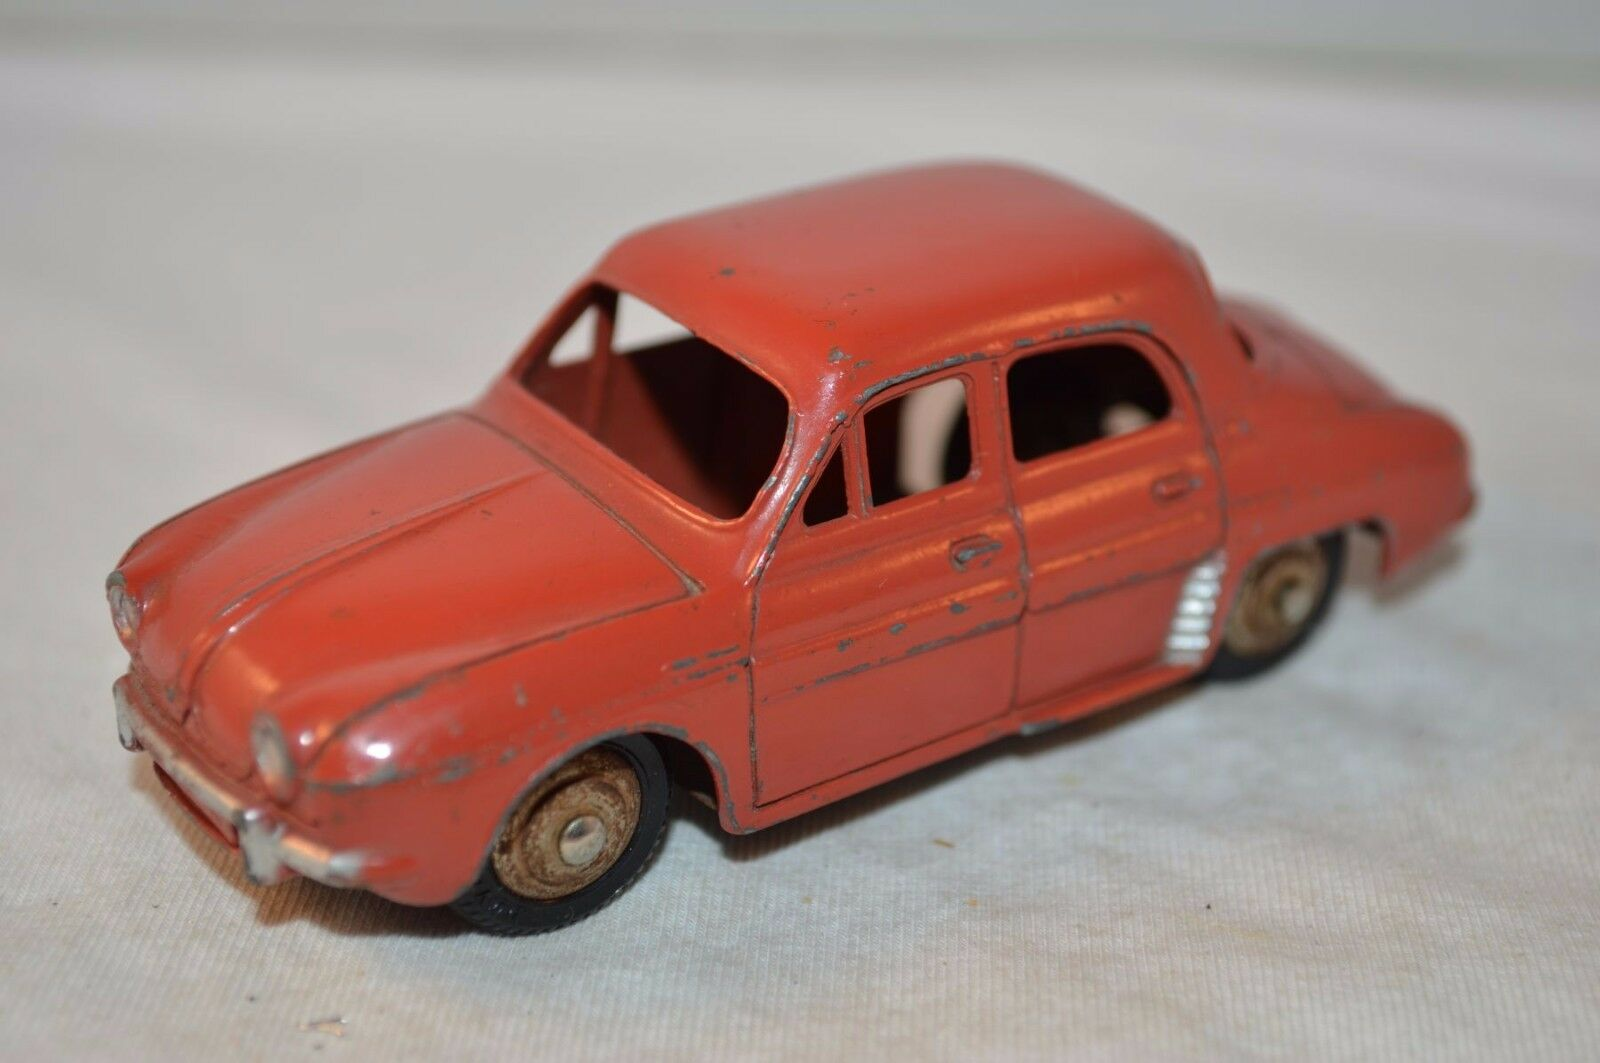 Dinky Toys 24 E Renault Dauphine red excellent plus all all all original condition 296160